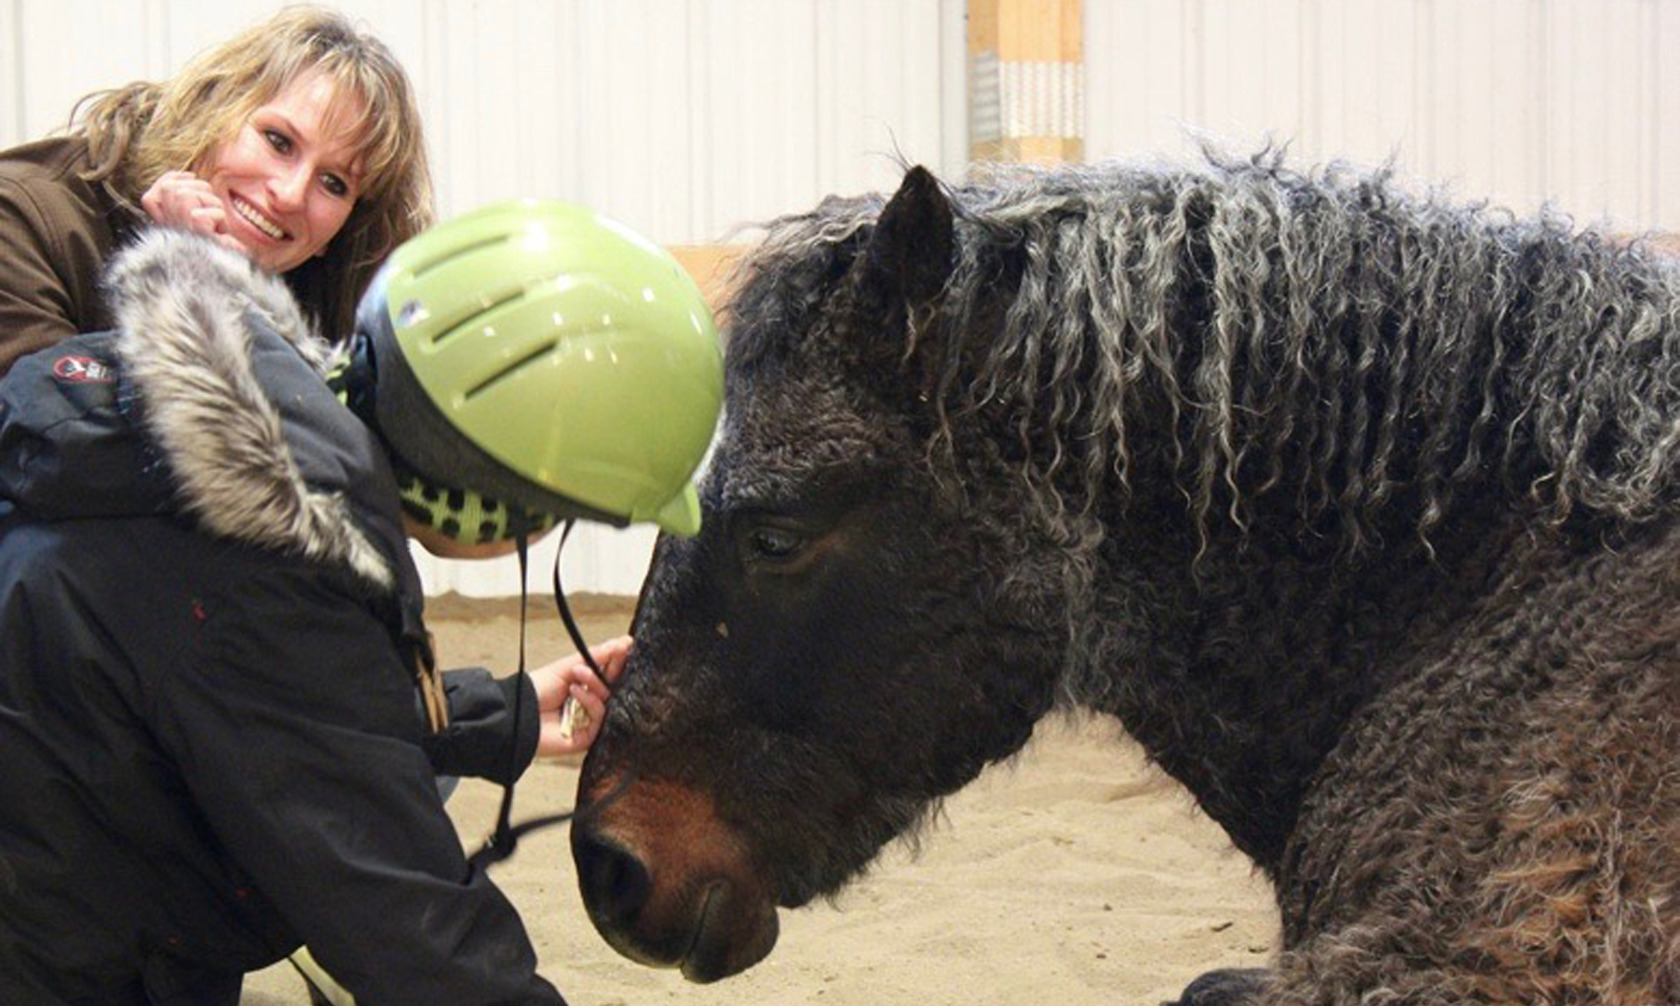 Certified Equine Assisted Learning Helping People with Horses